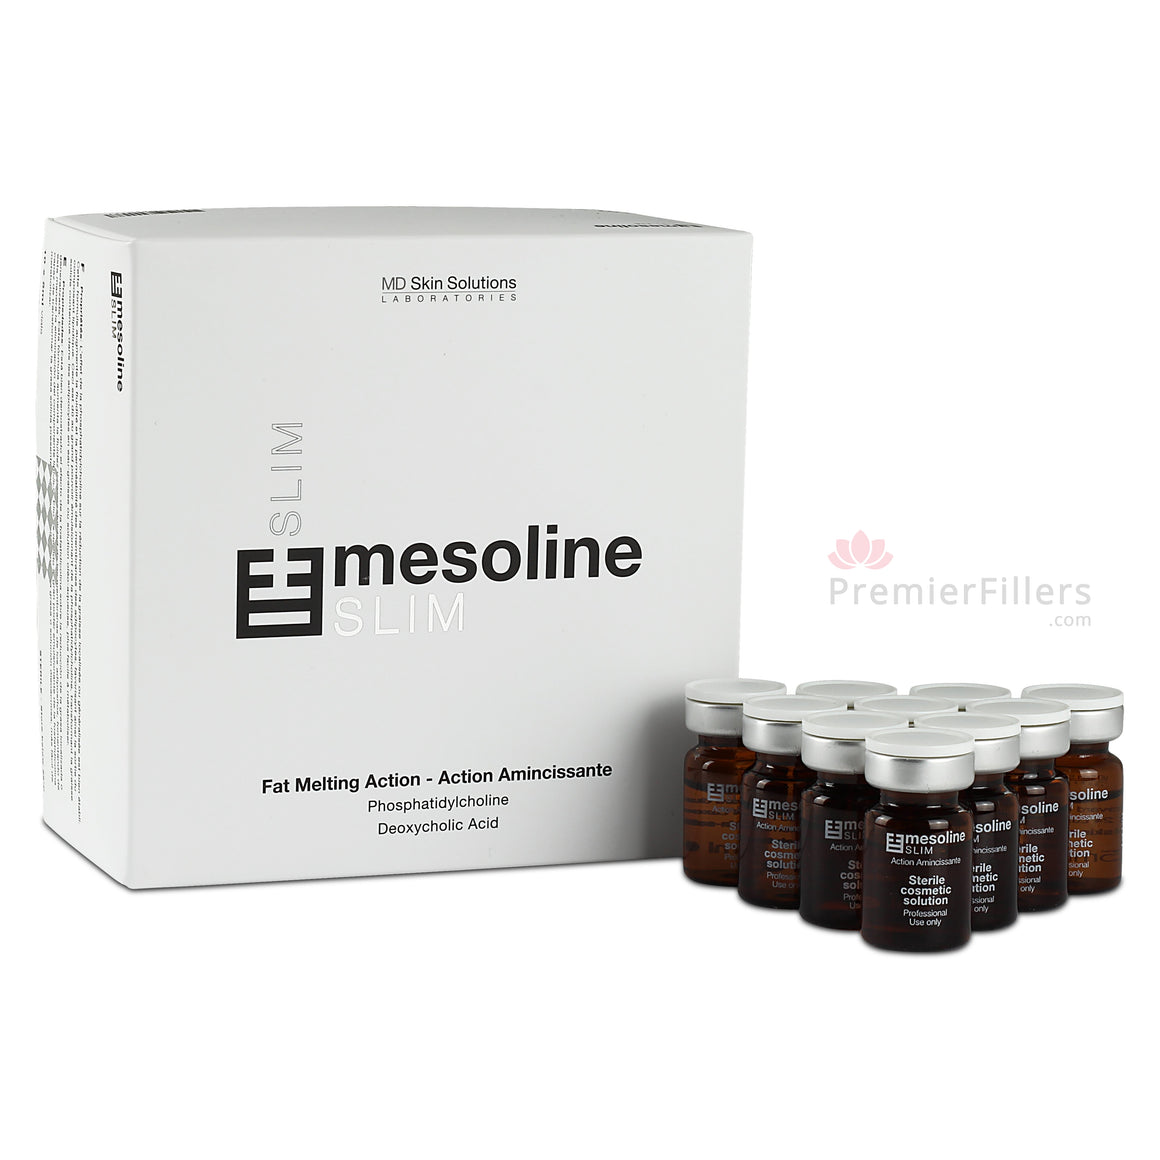 Mesoline Bodycontour